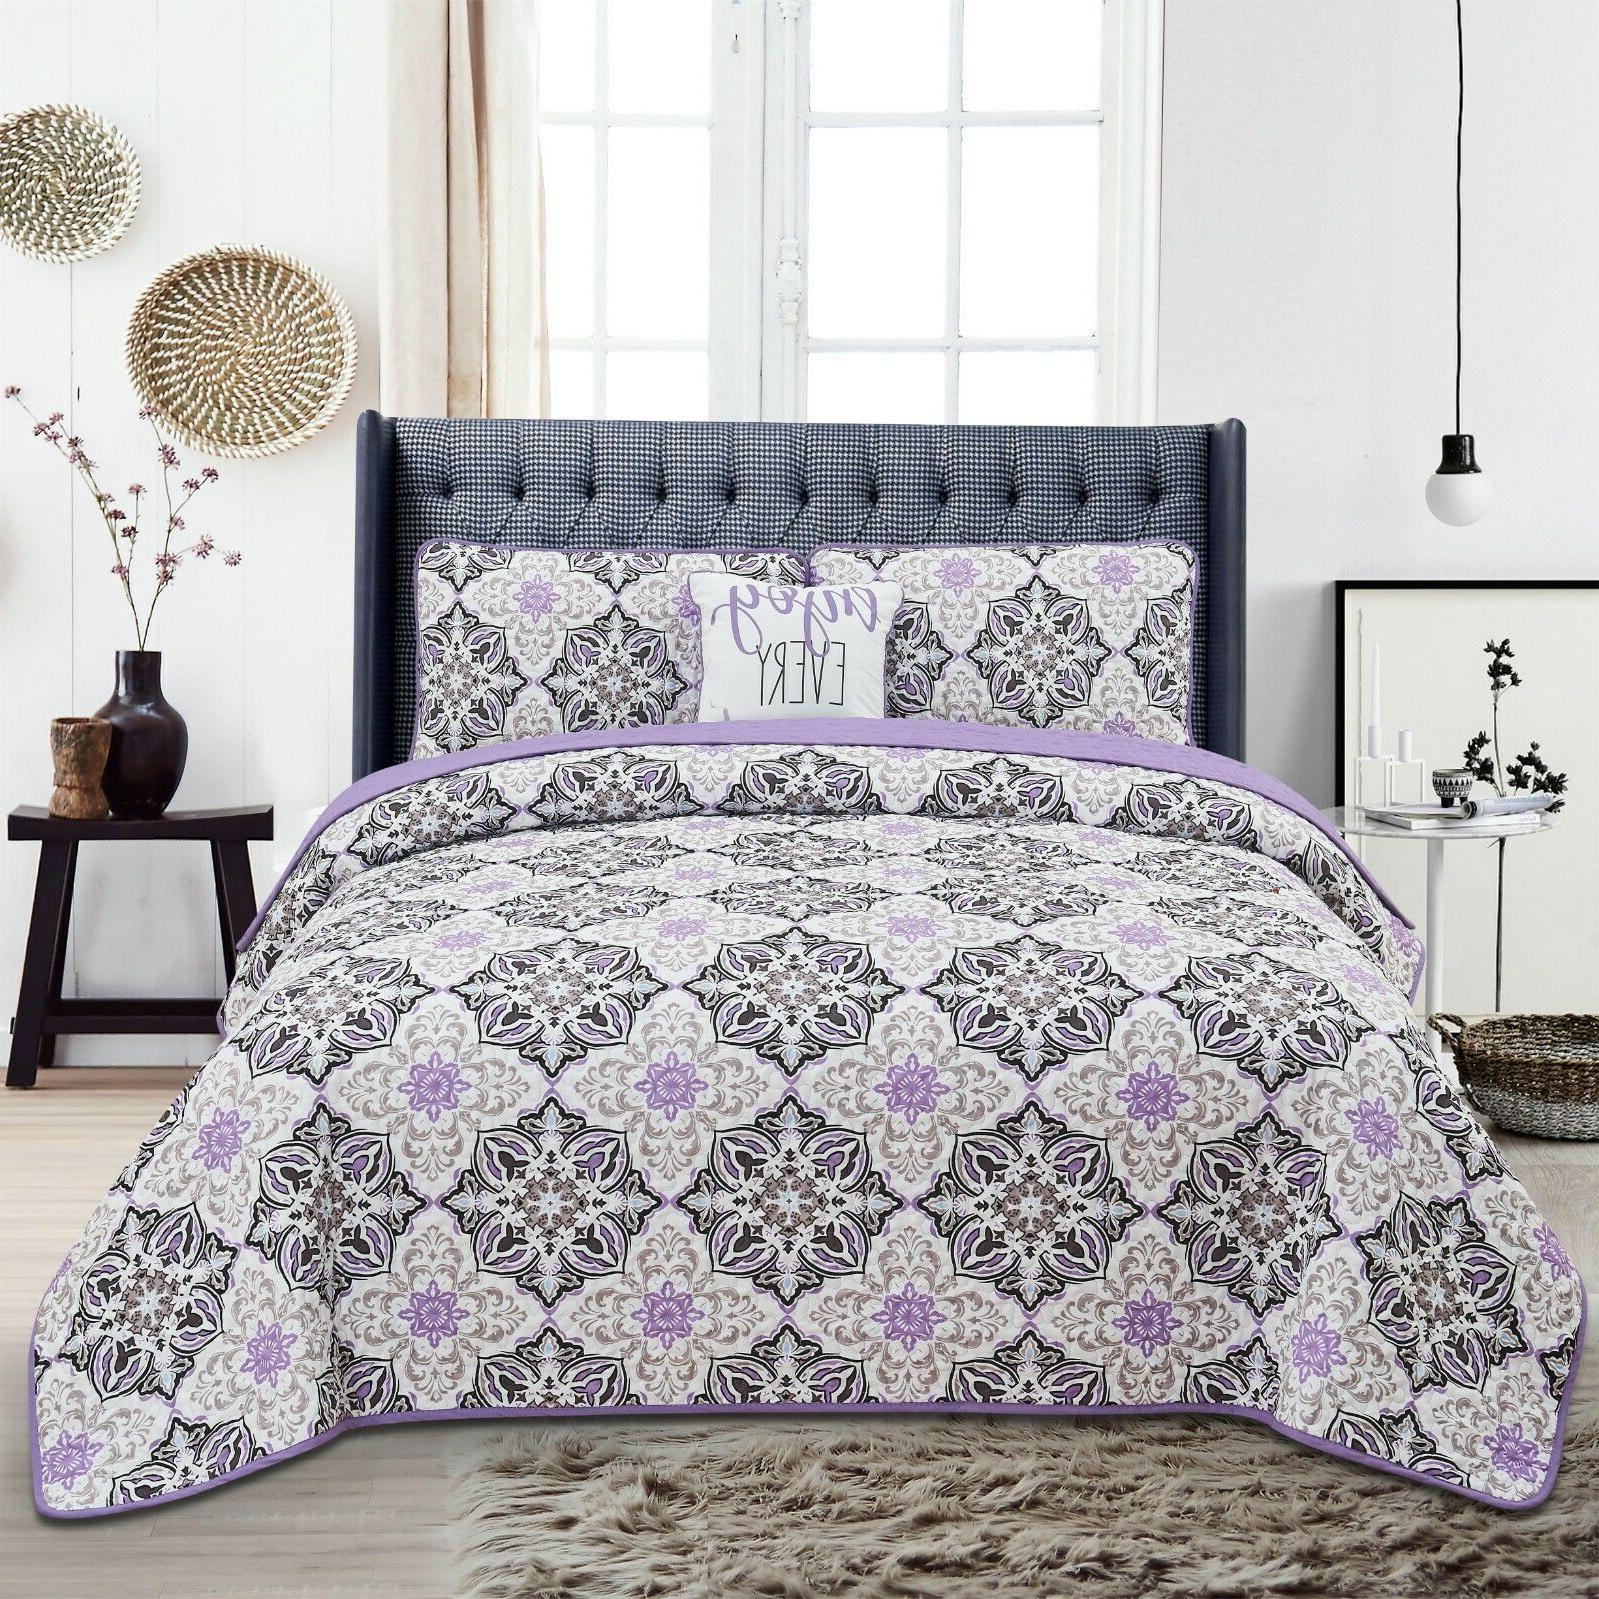 Queen Quilt Bedding Printed Pattern 4 Piece Quilt Set Bedding Set